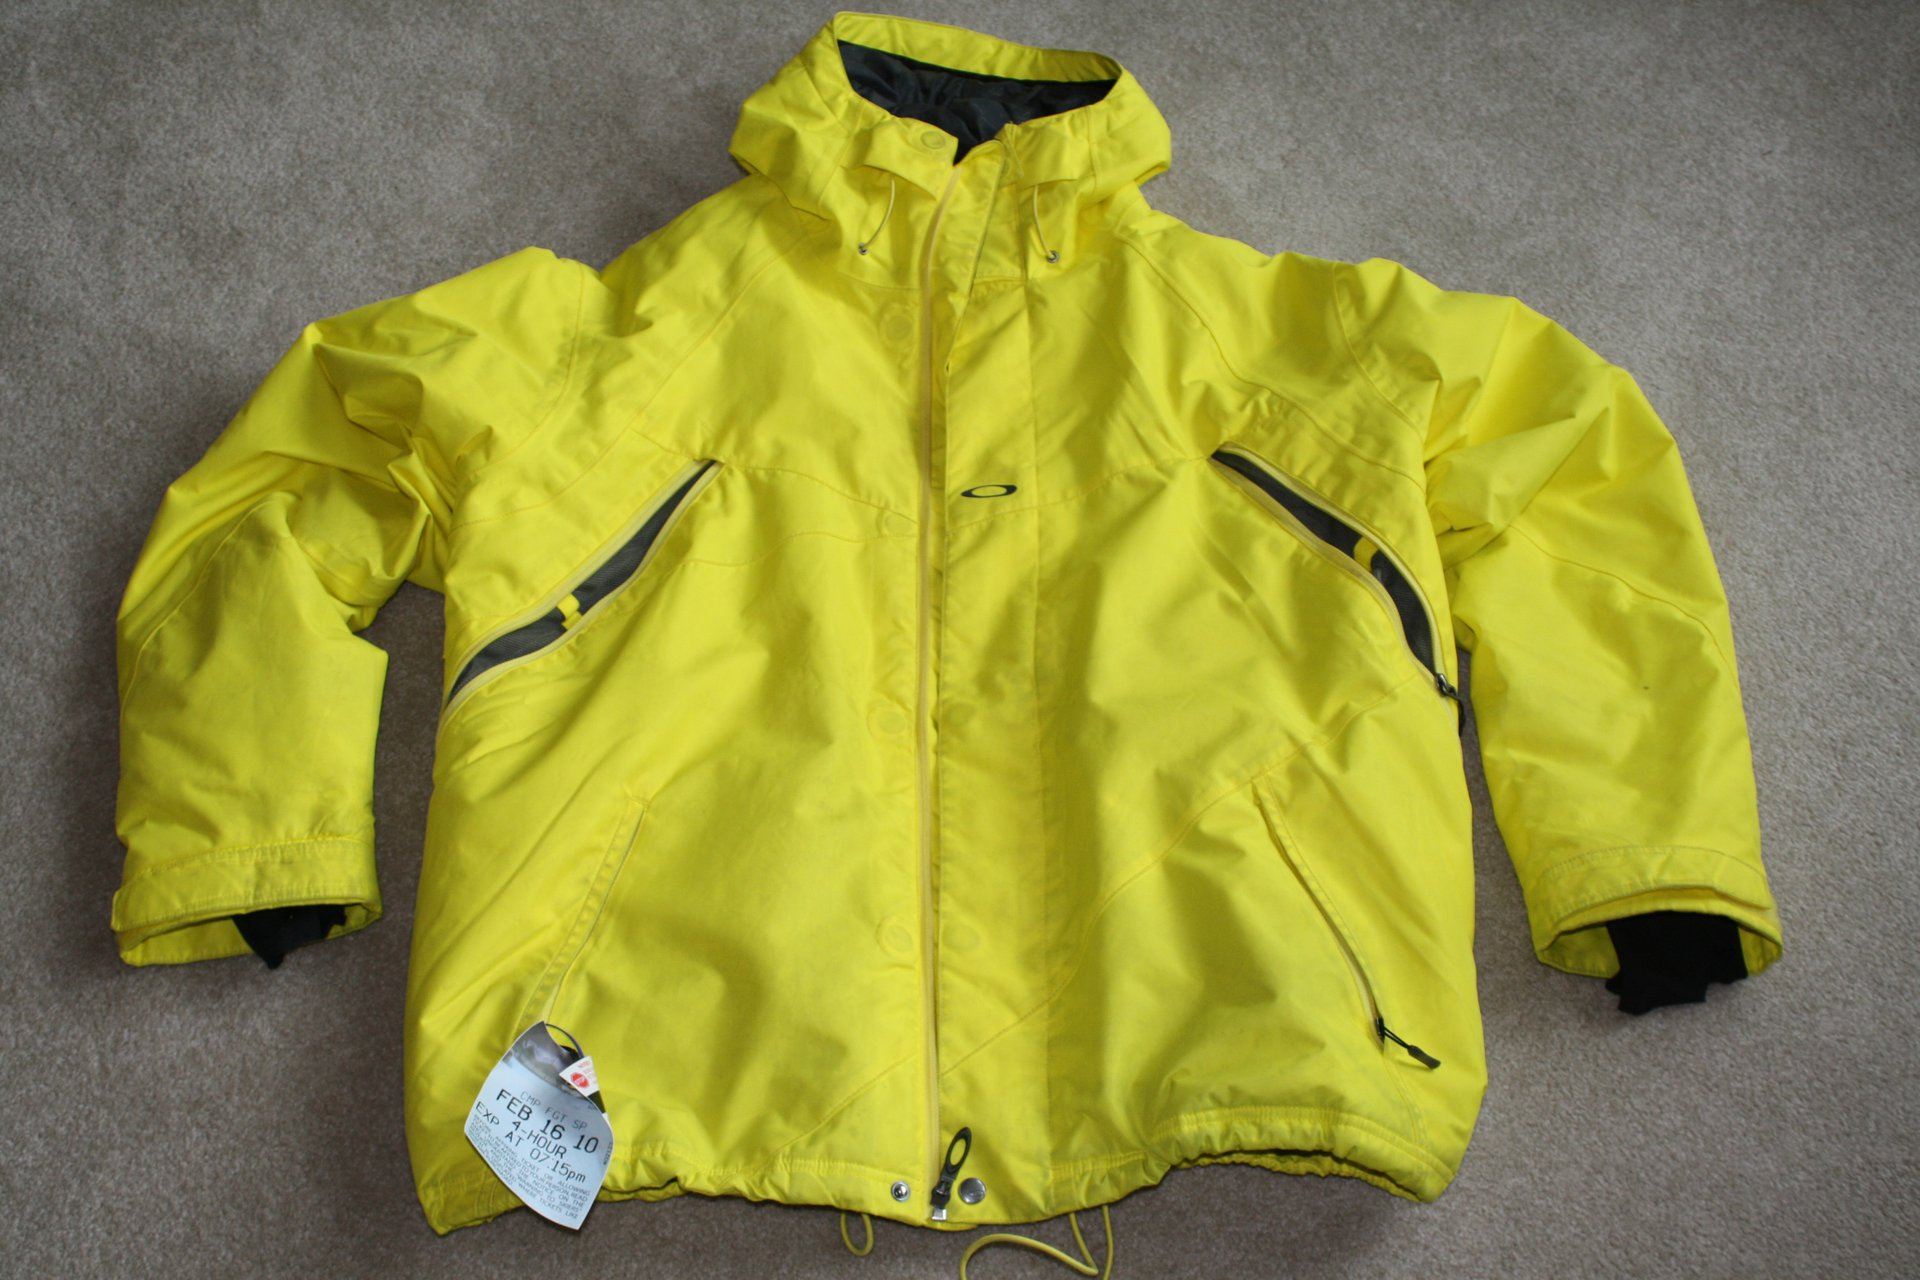 Highlighter yellow Oakley coat L 9.5/10  $90